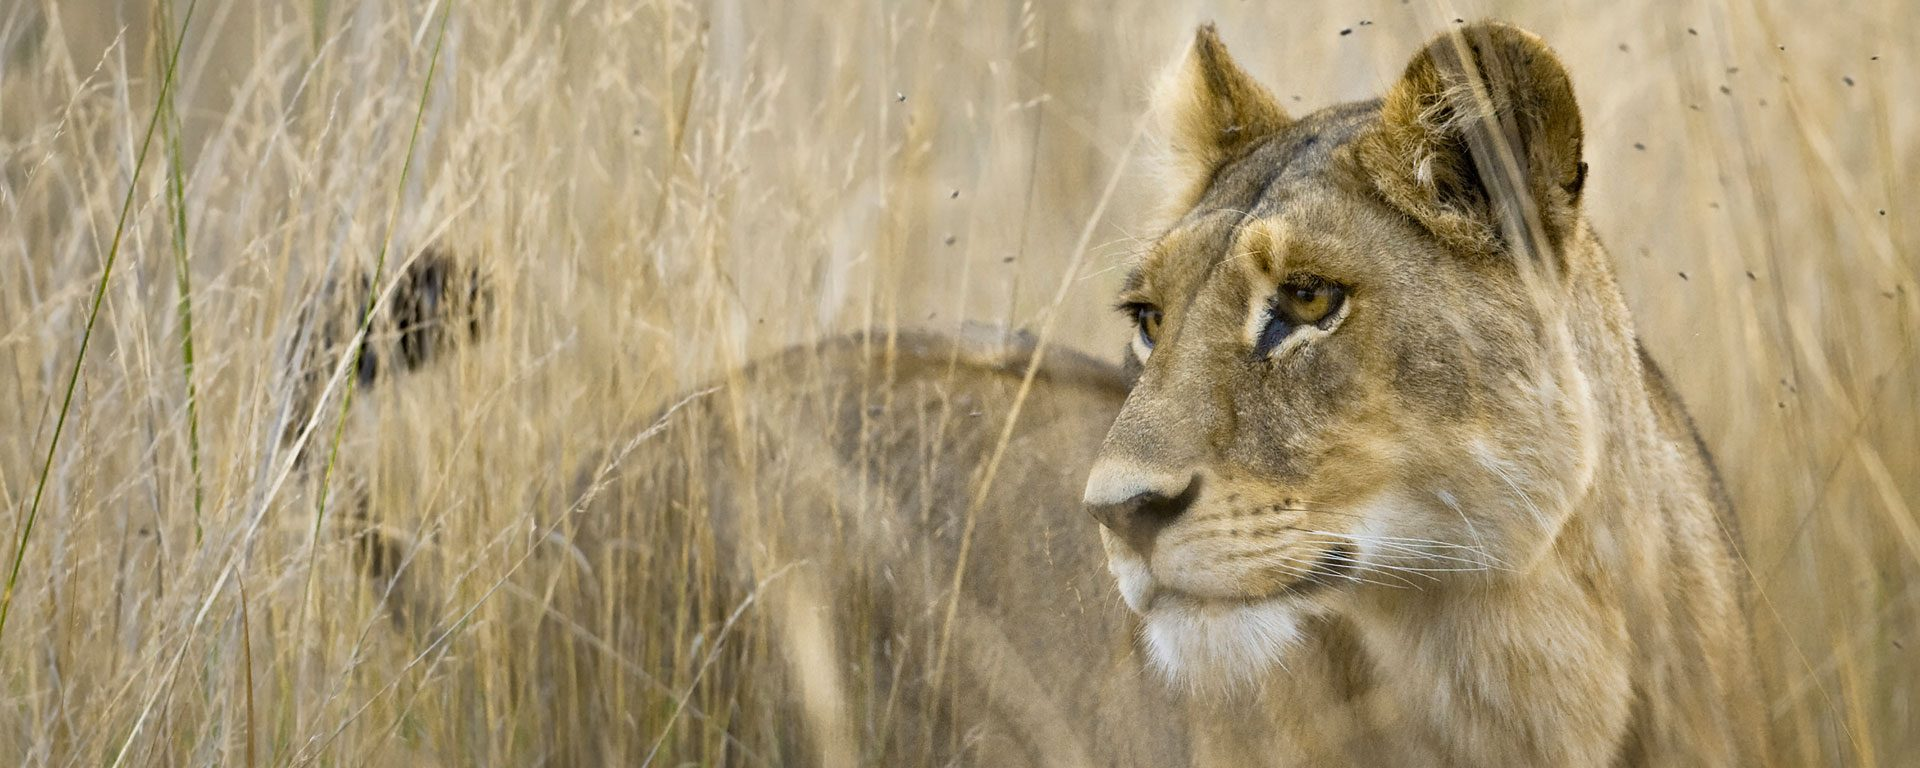 Lion stands in tall grass in the Okavango Delta, Botswana